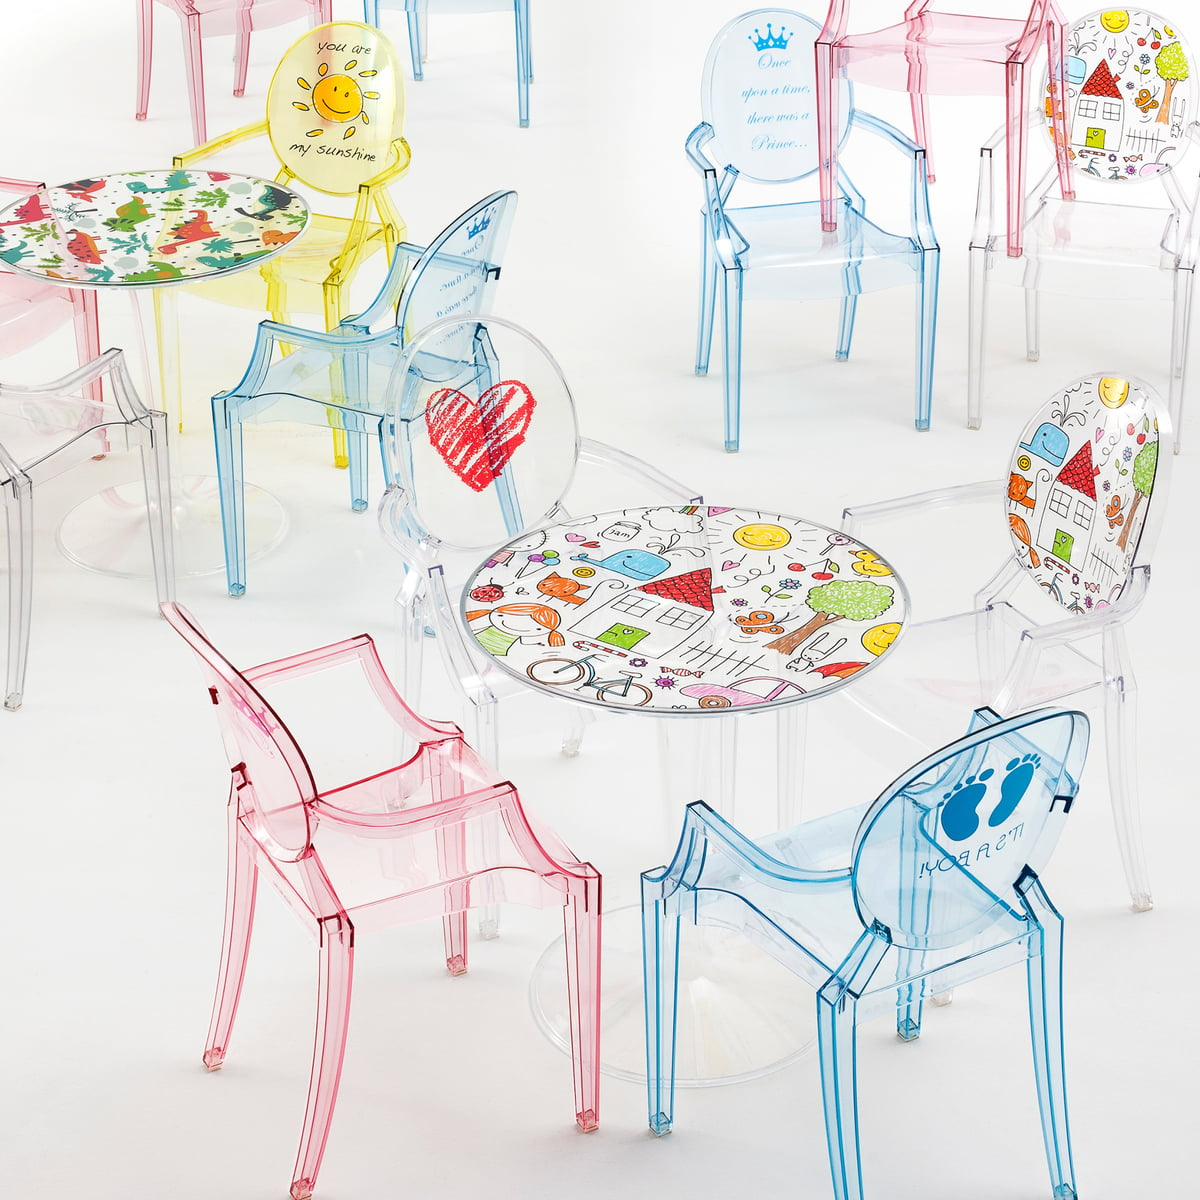 children's chair lou lou ghost by kartell in the shop - lou lou ghost special edition and tip top children's table by kartell